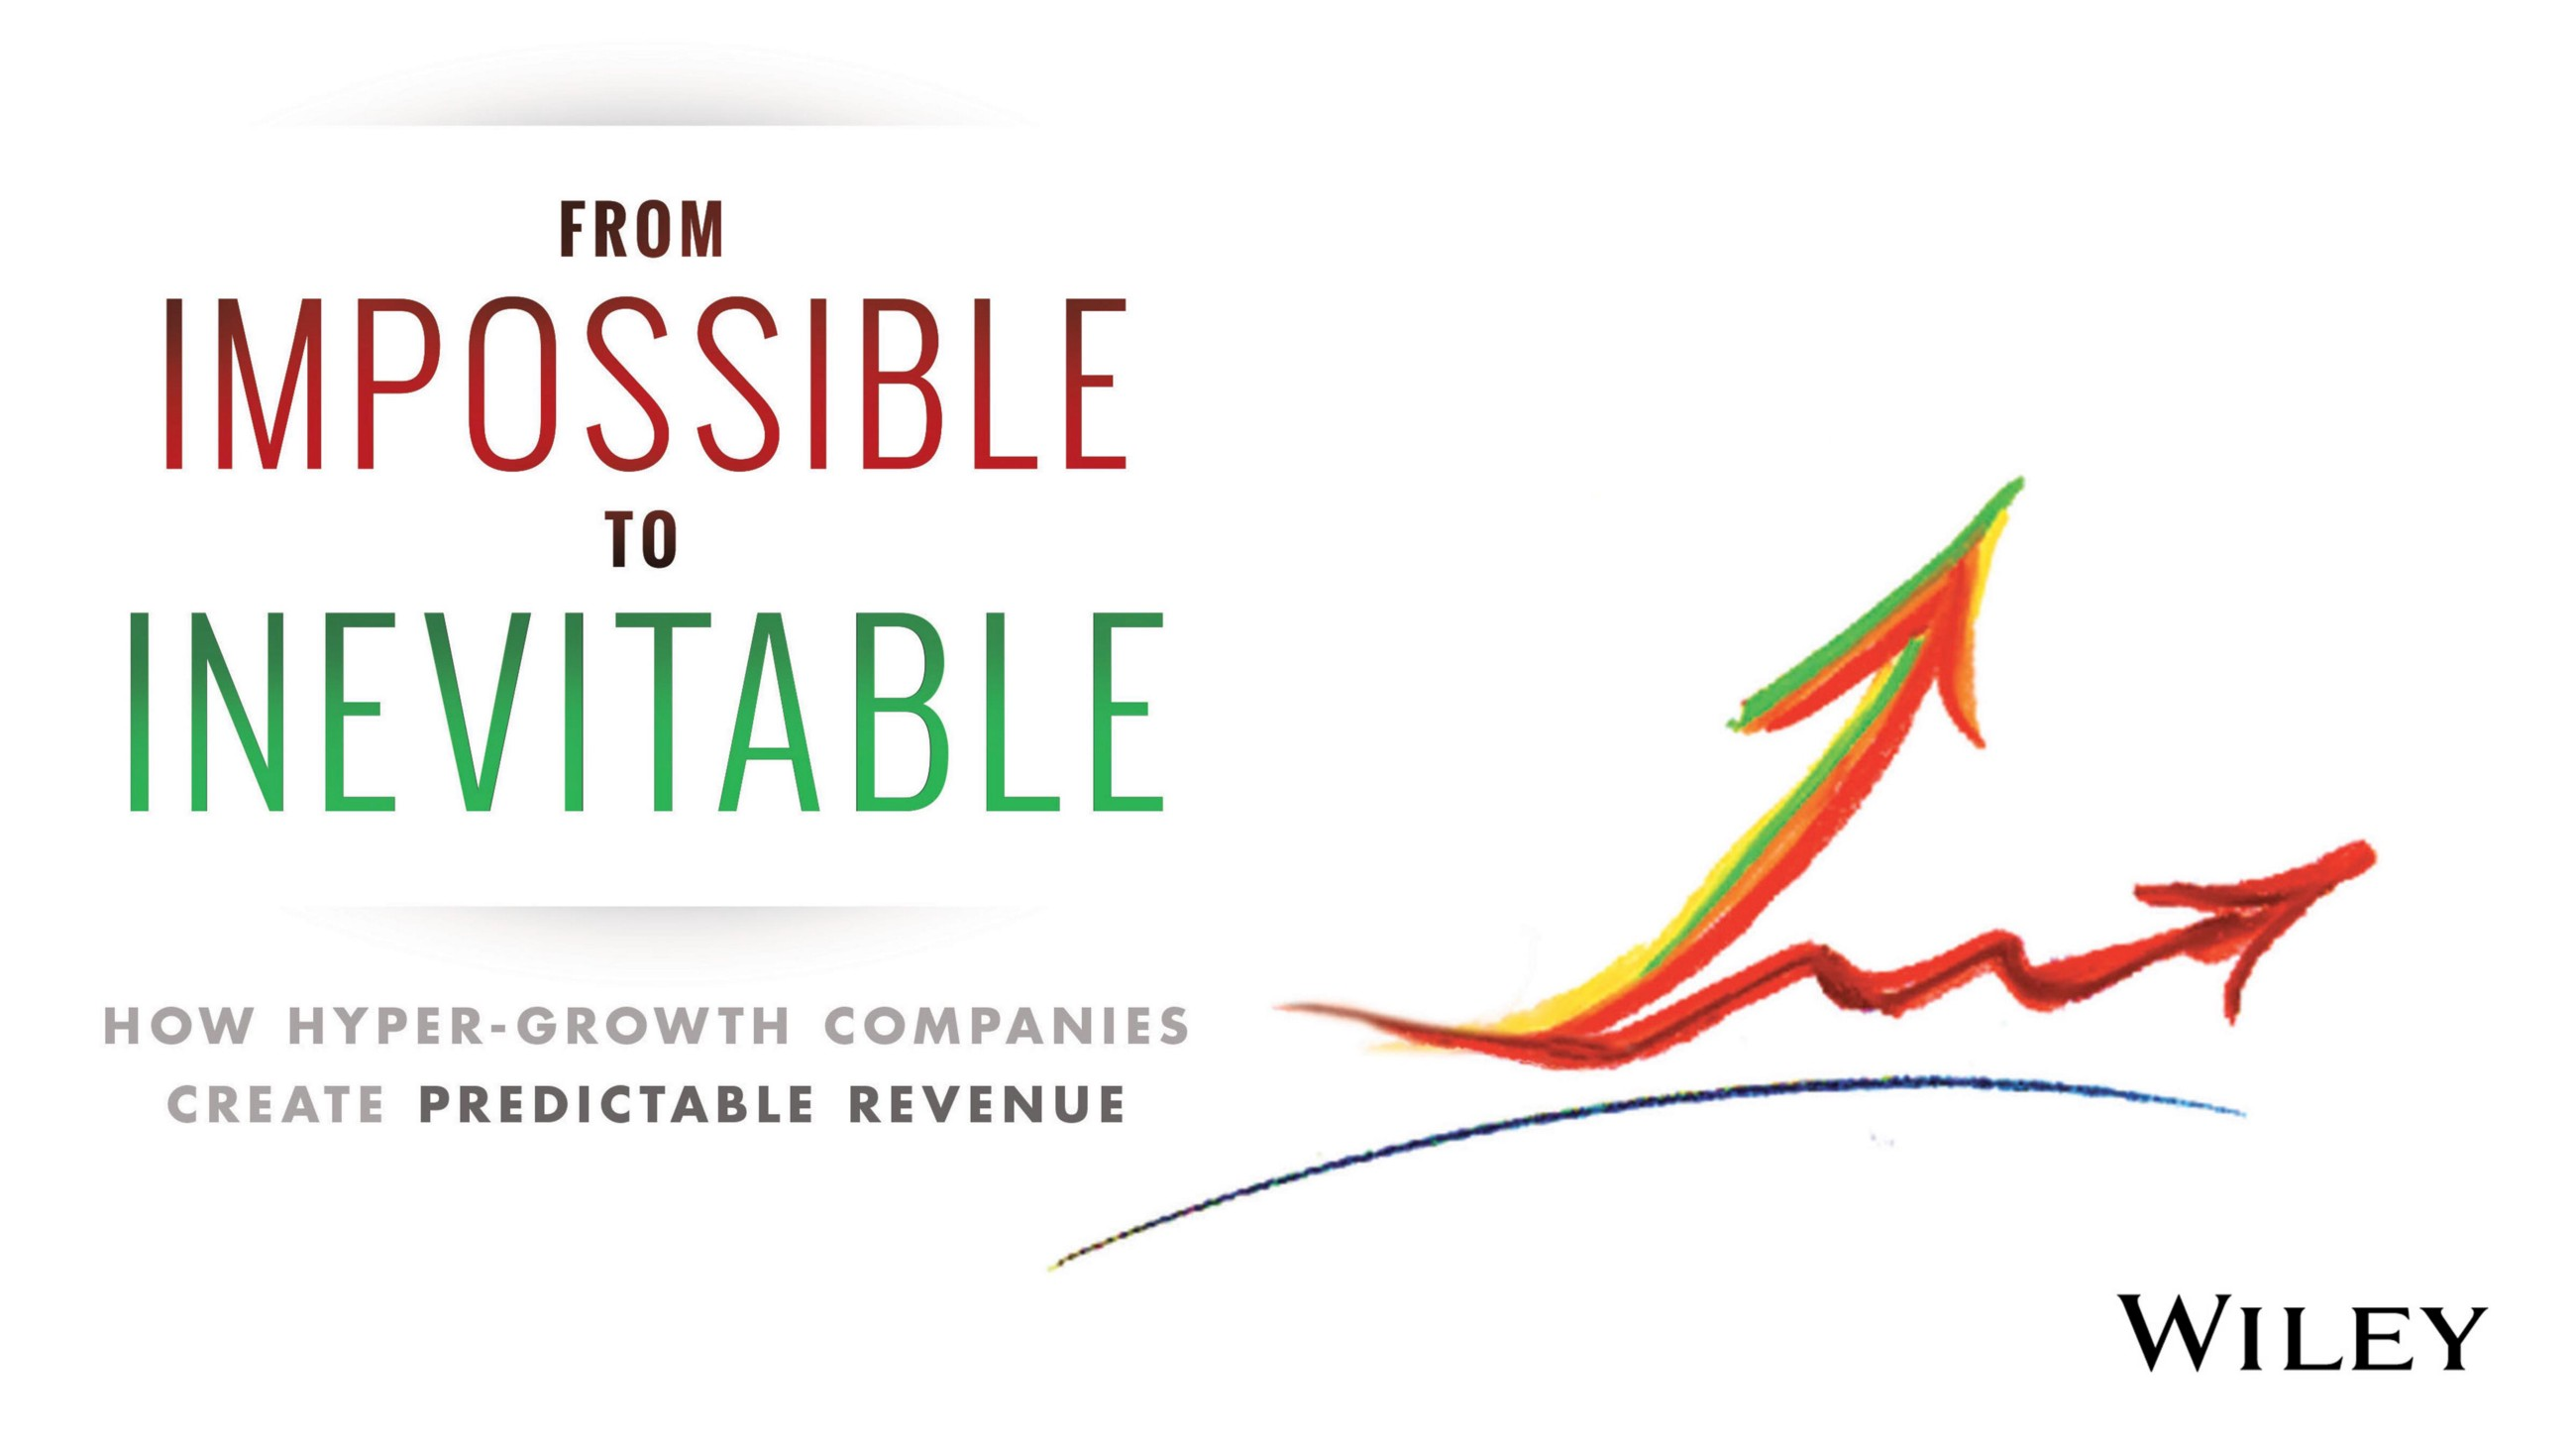 Book Review: From Impossible to Inevitable